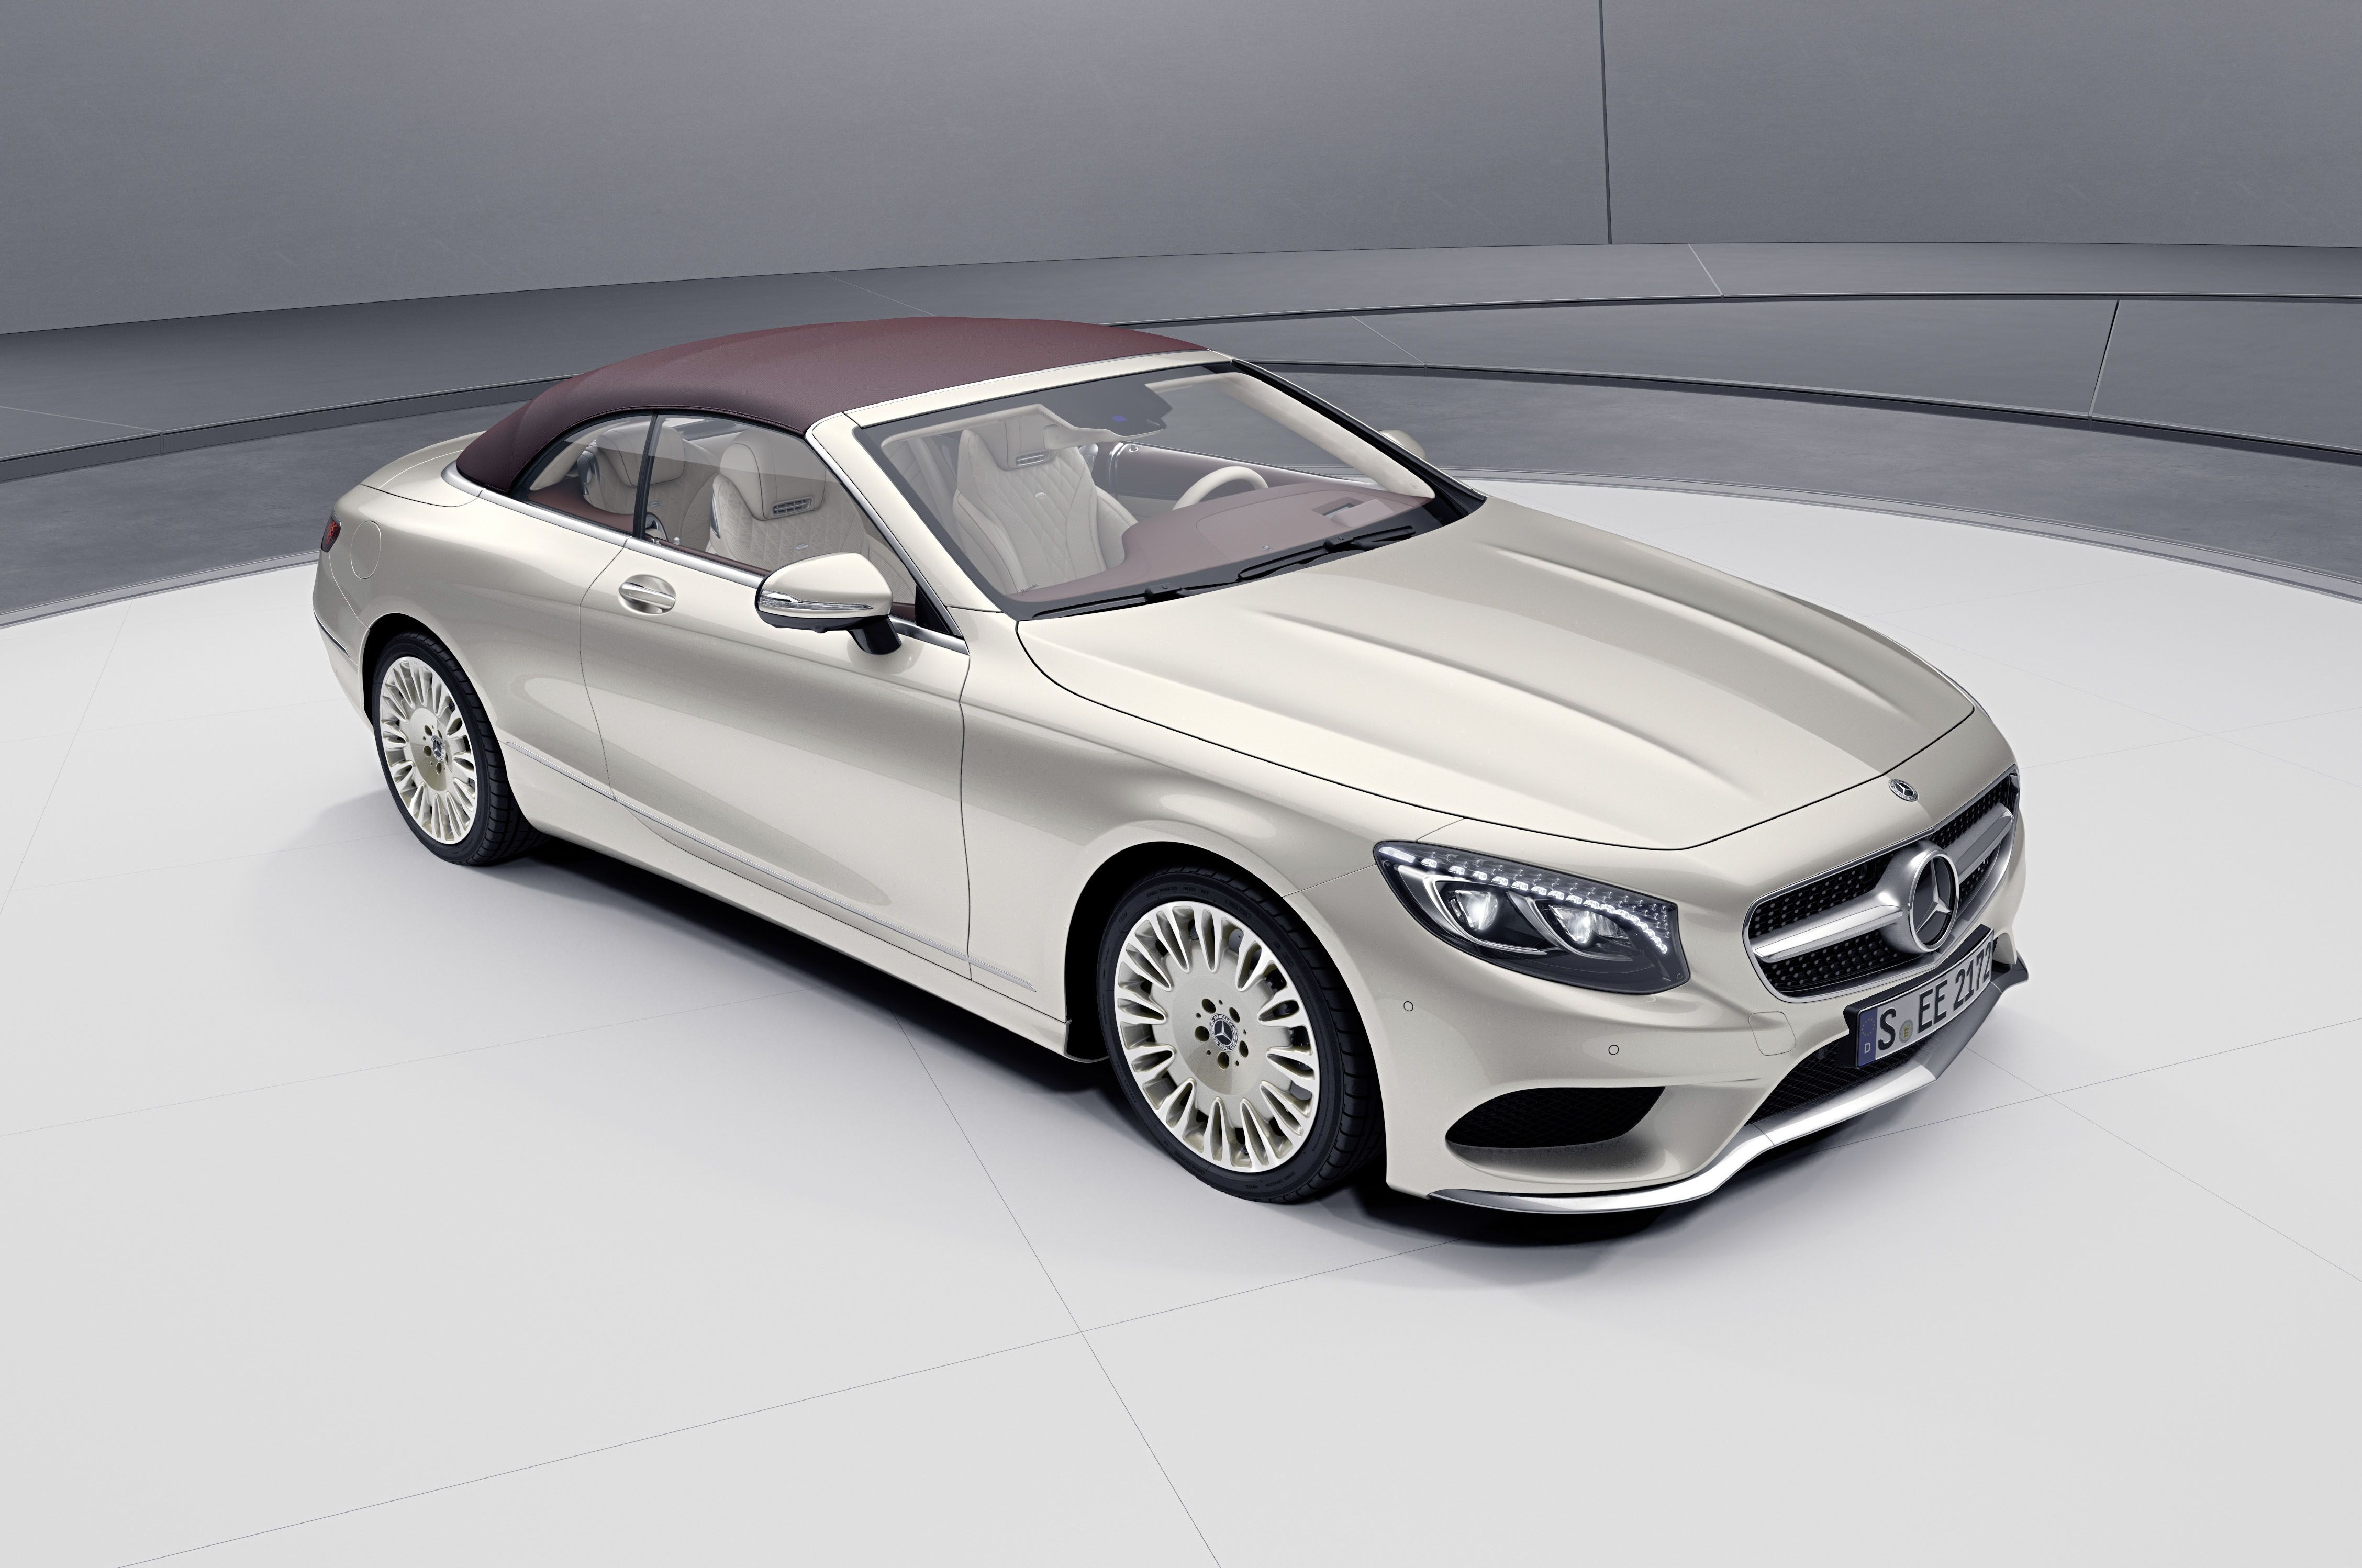 2015 Mercedes Benz S Class Coupe Review And Price With Images